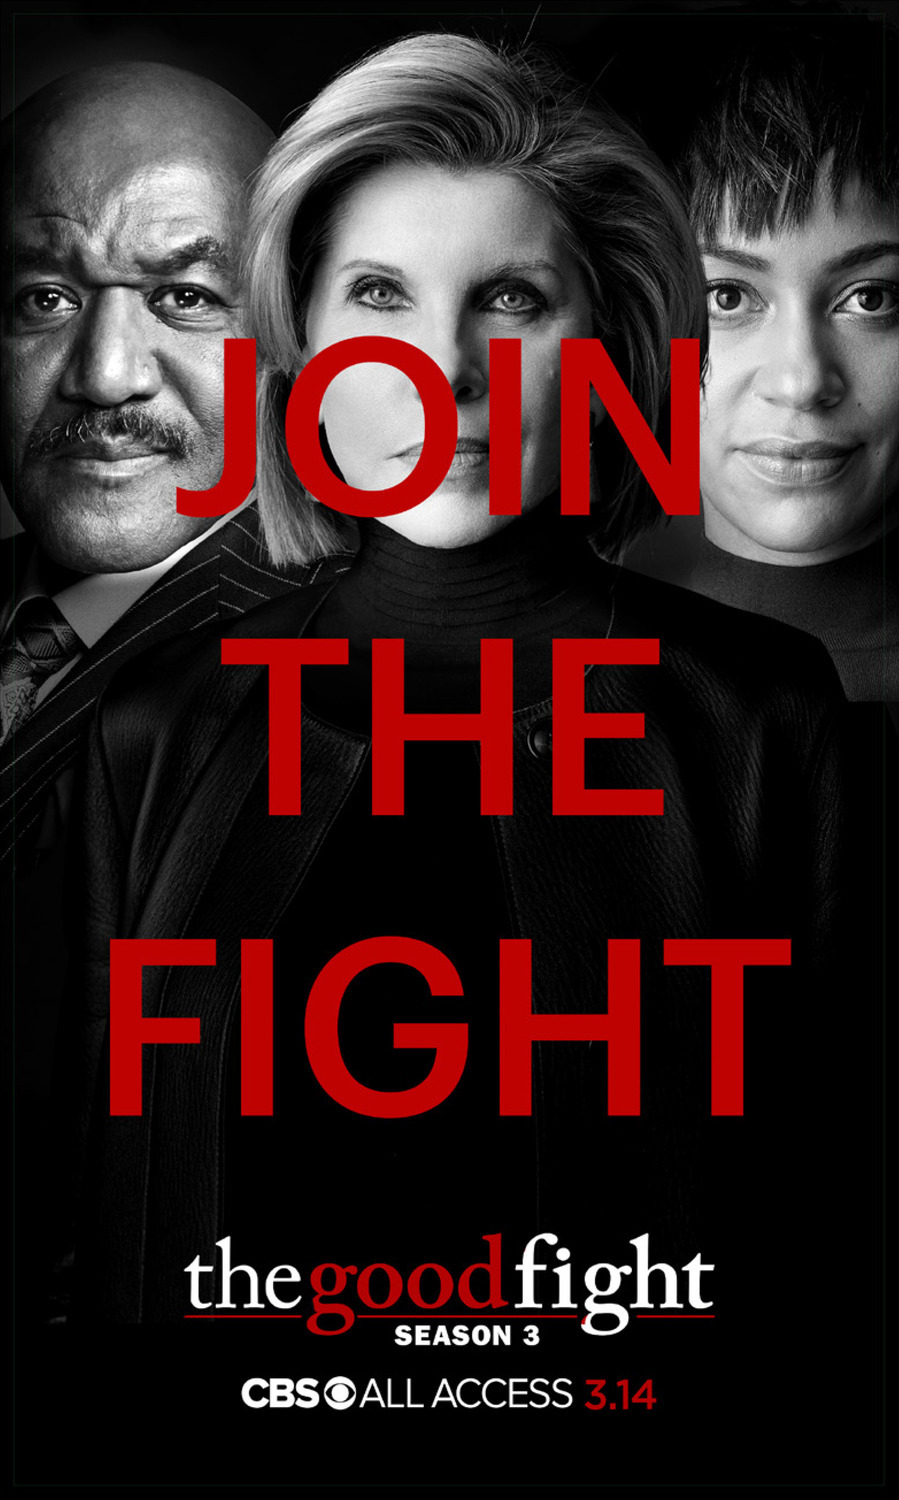 The Good Fight (TV Series 2017– ) - IMDb